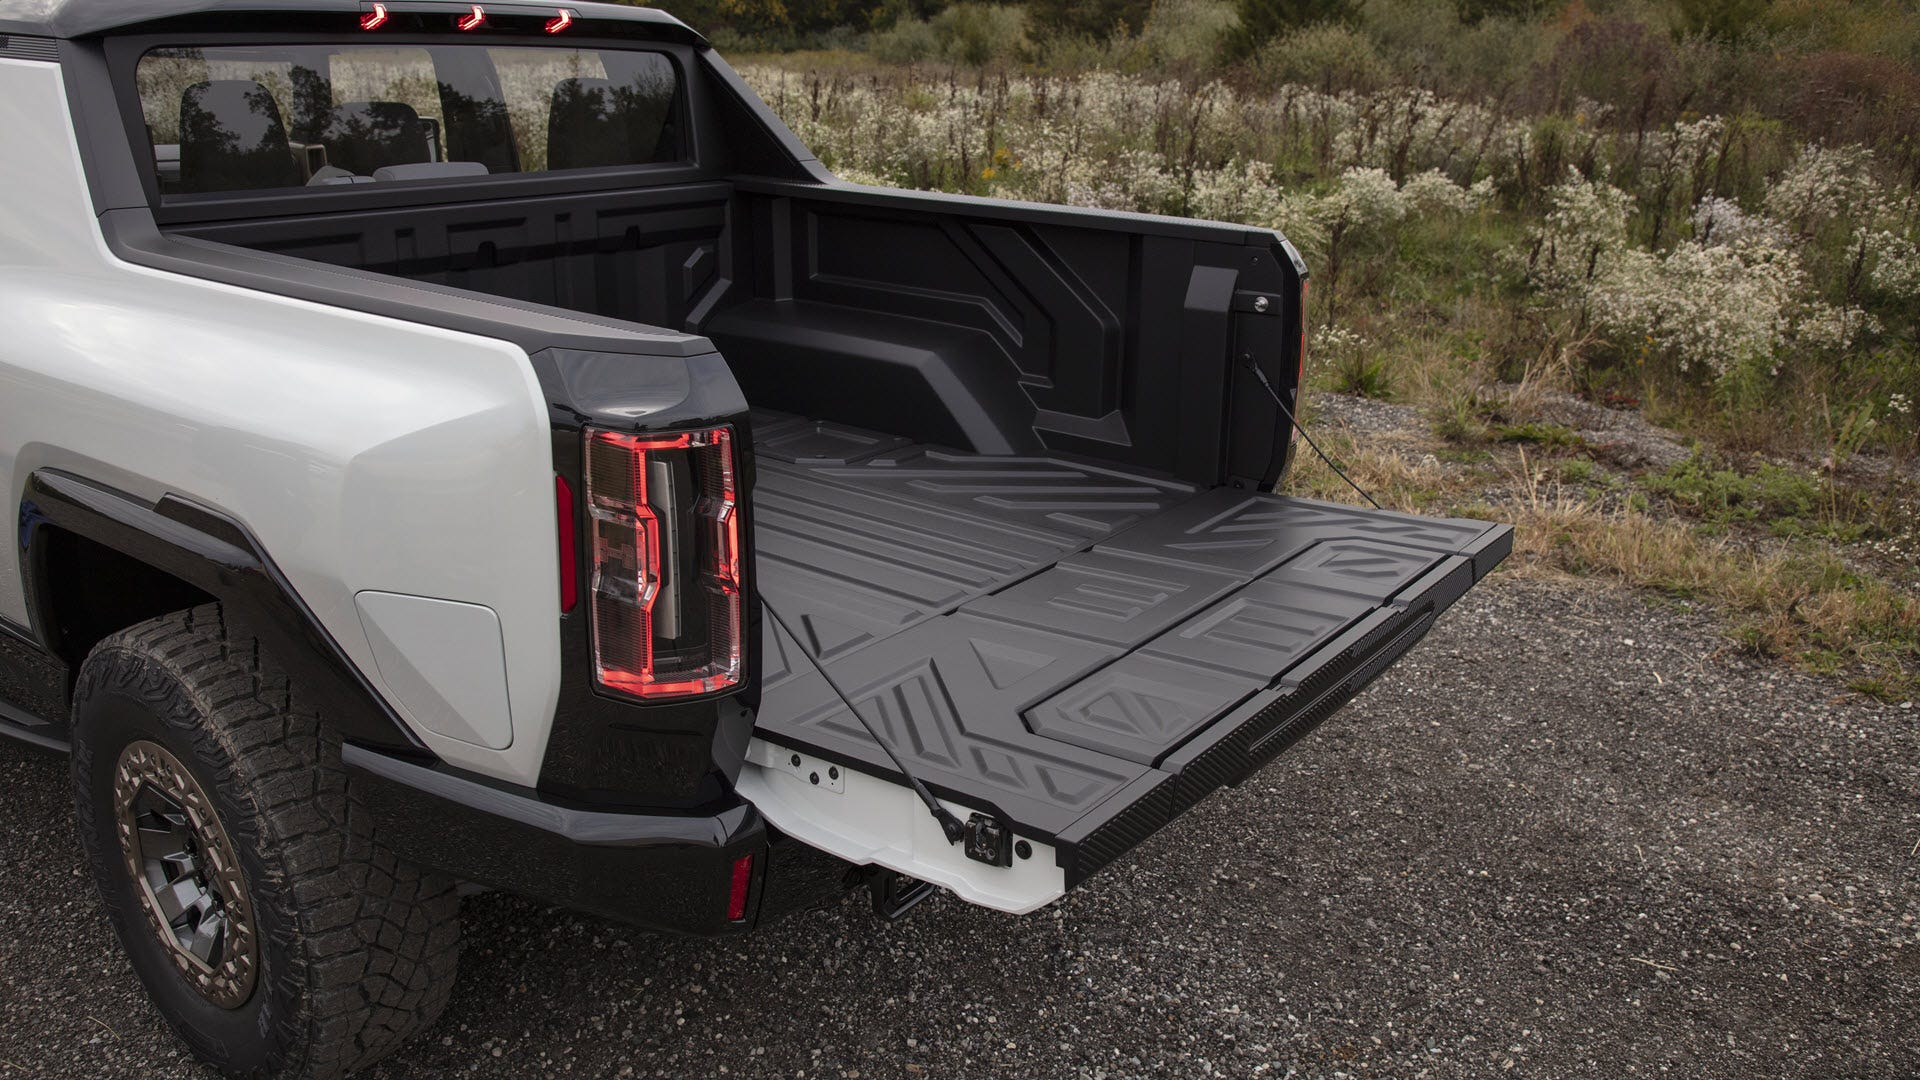 The tailgate of the GMC Hummer EV, with a step built into it.